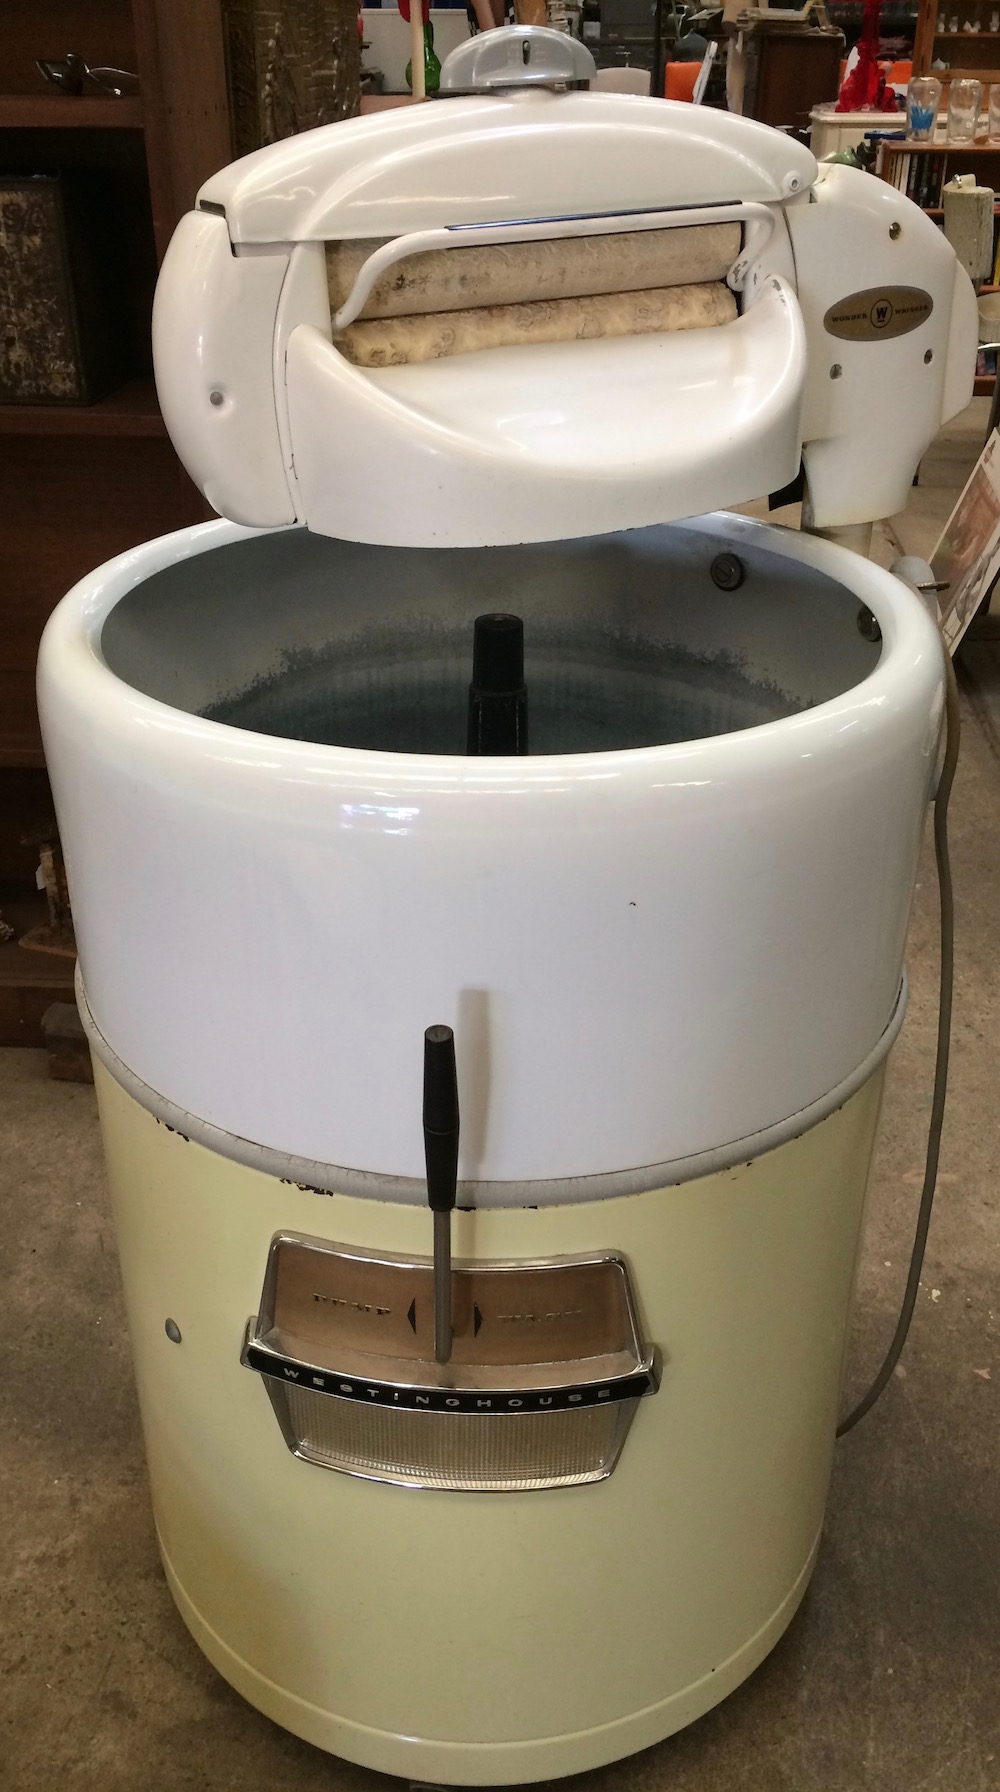 Vintage Westinghouse Wringer Washer With Instruction